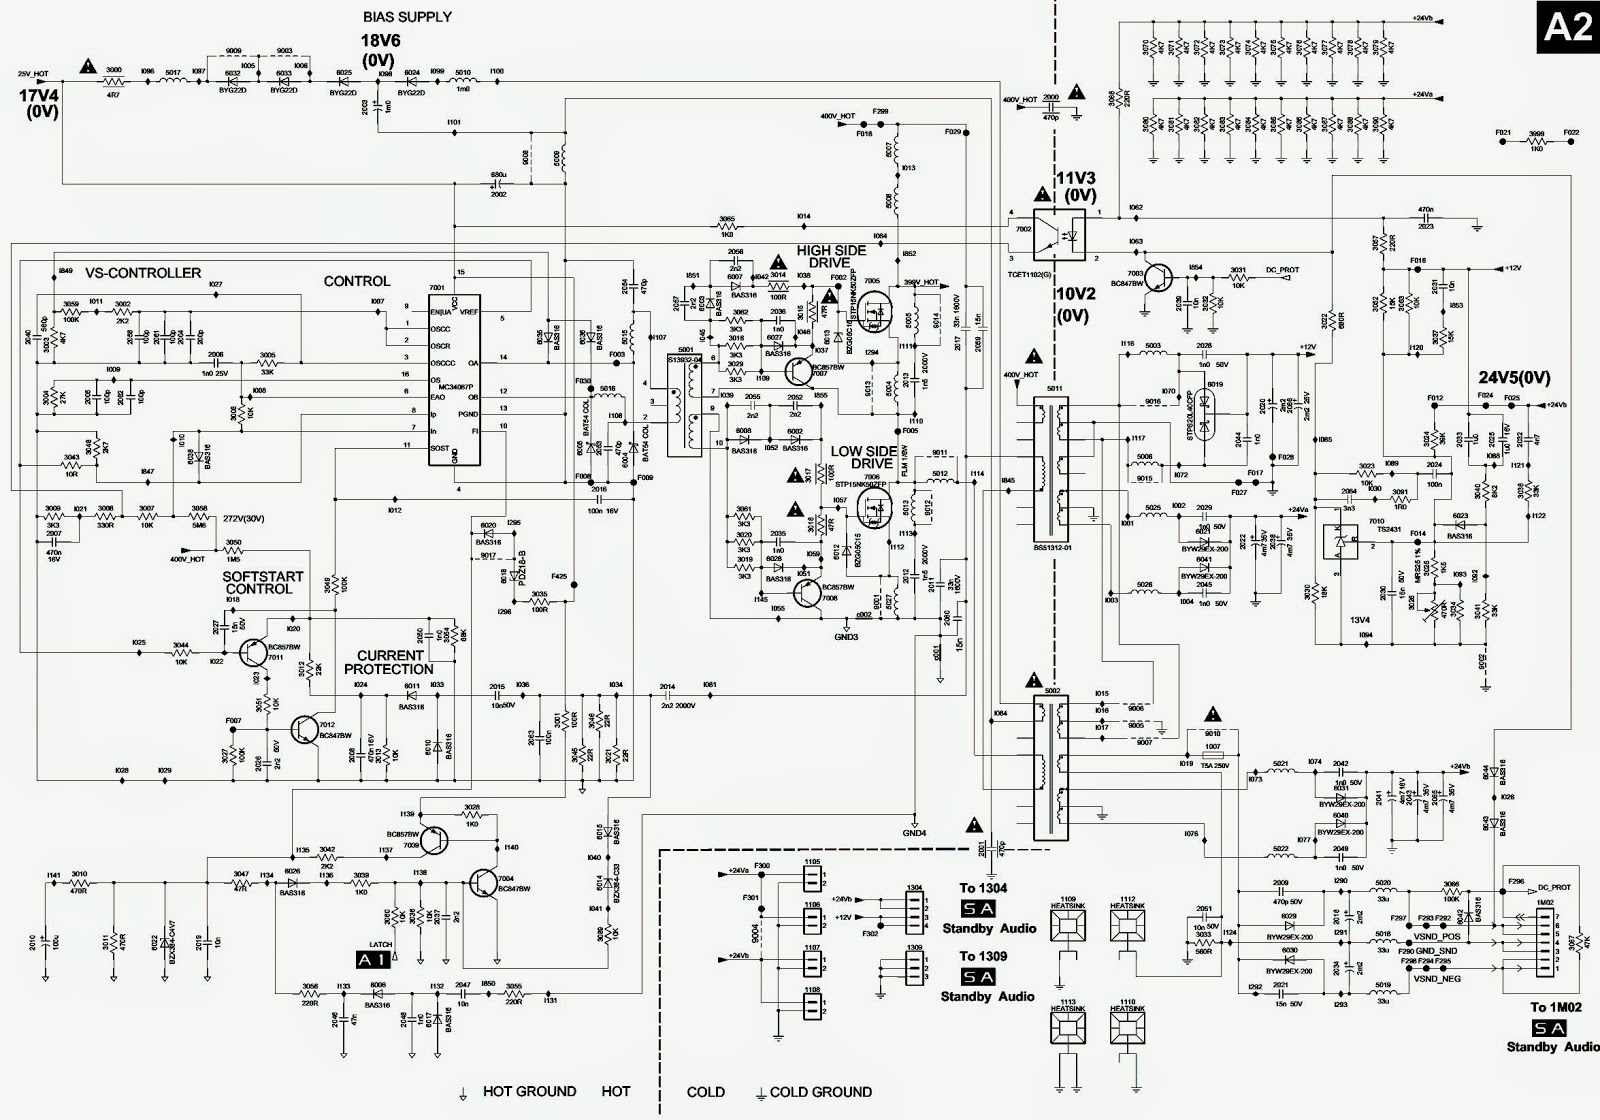 Smps schematic circuit diagram philips 37 inch lcd tvs